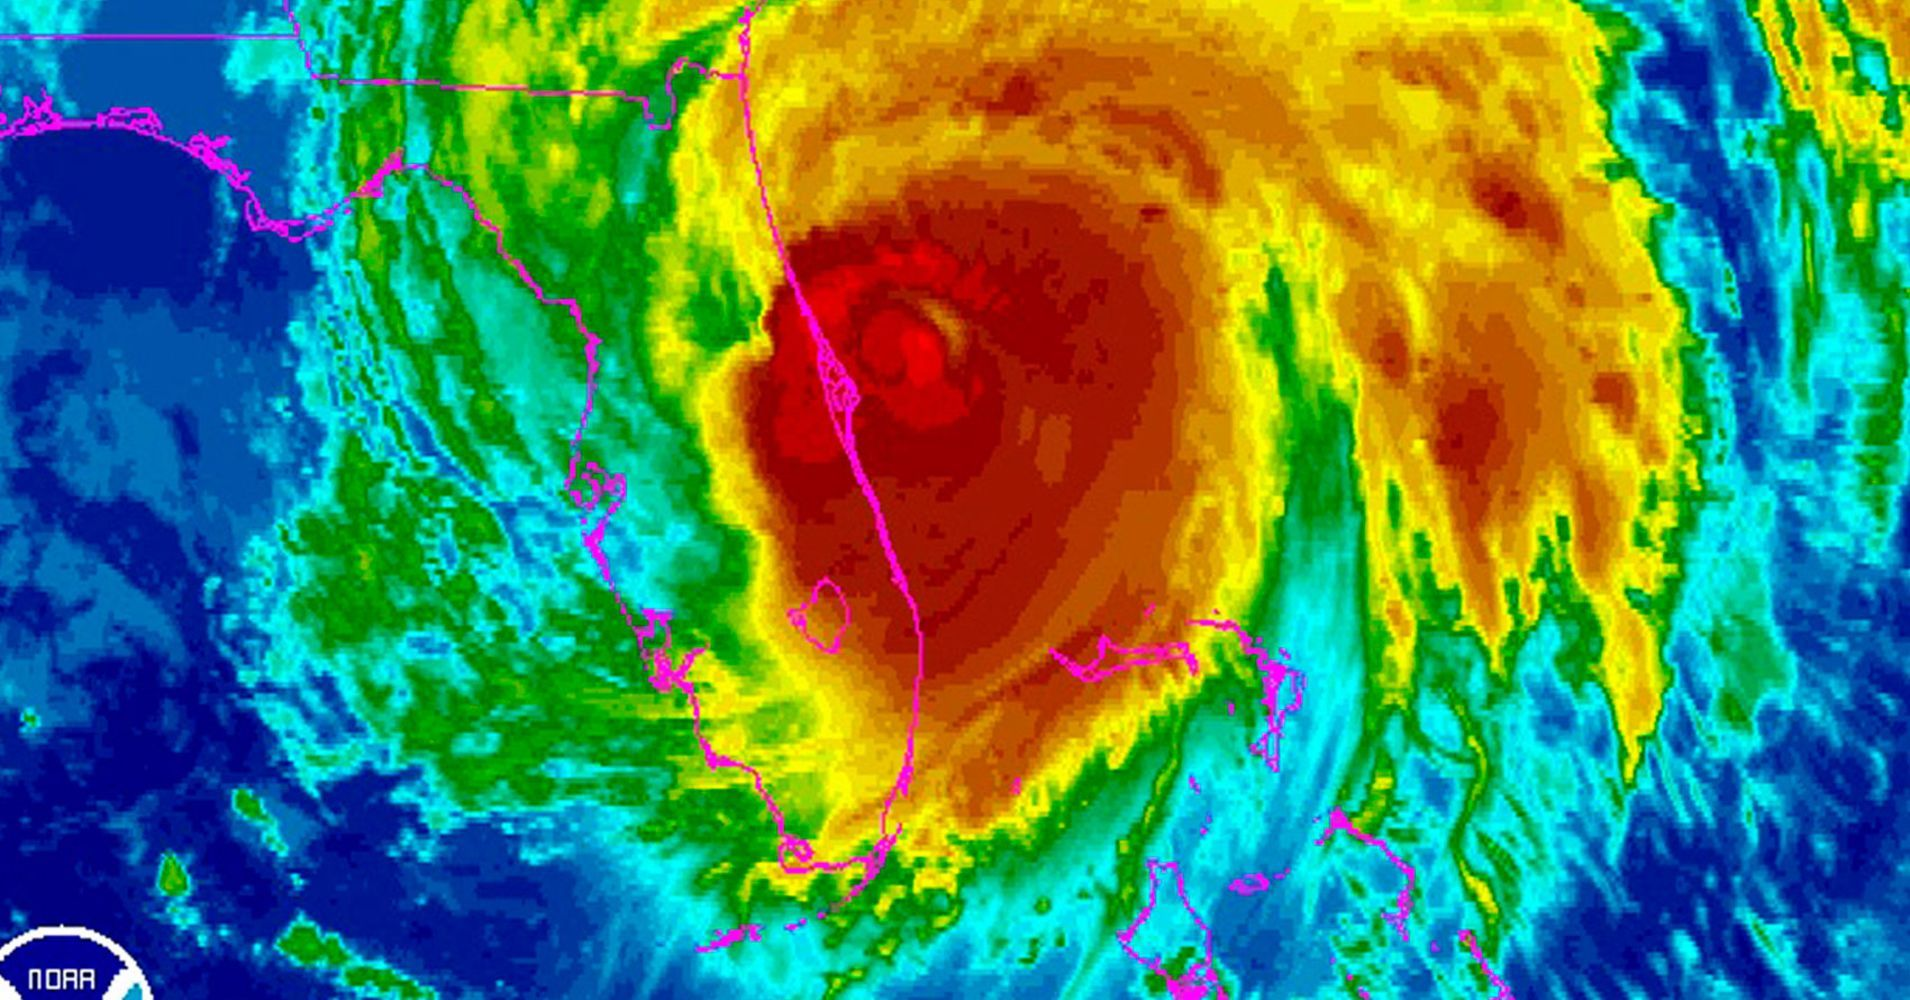 Here S Why Hurricanes Spin Counterclockwise In The North Hurricane Hurricane Matthew Spinning